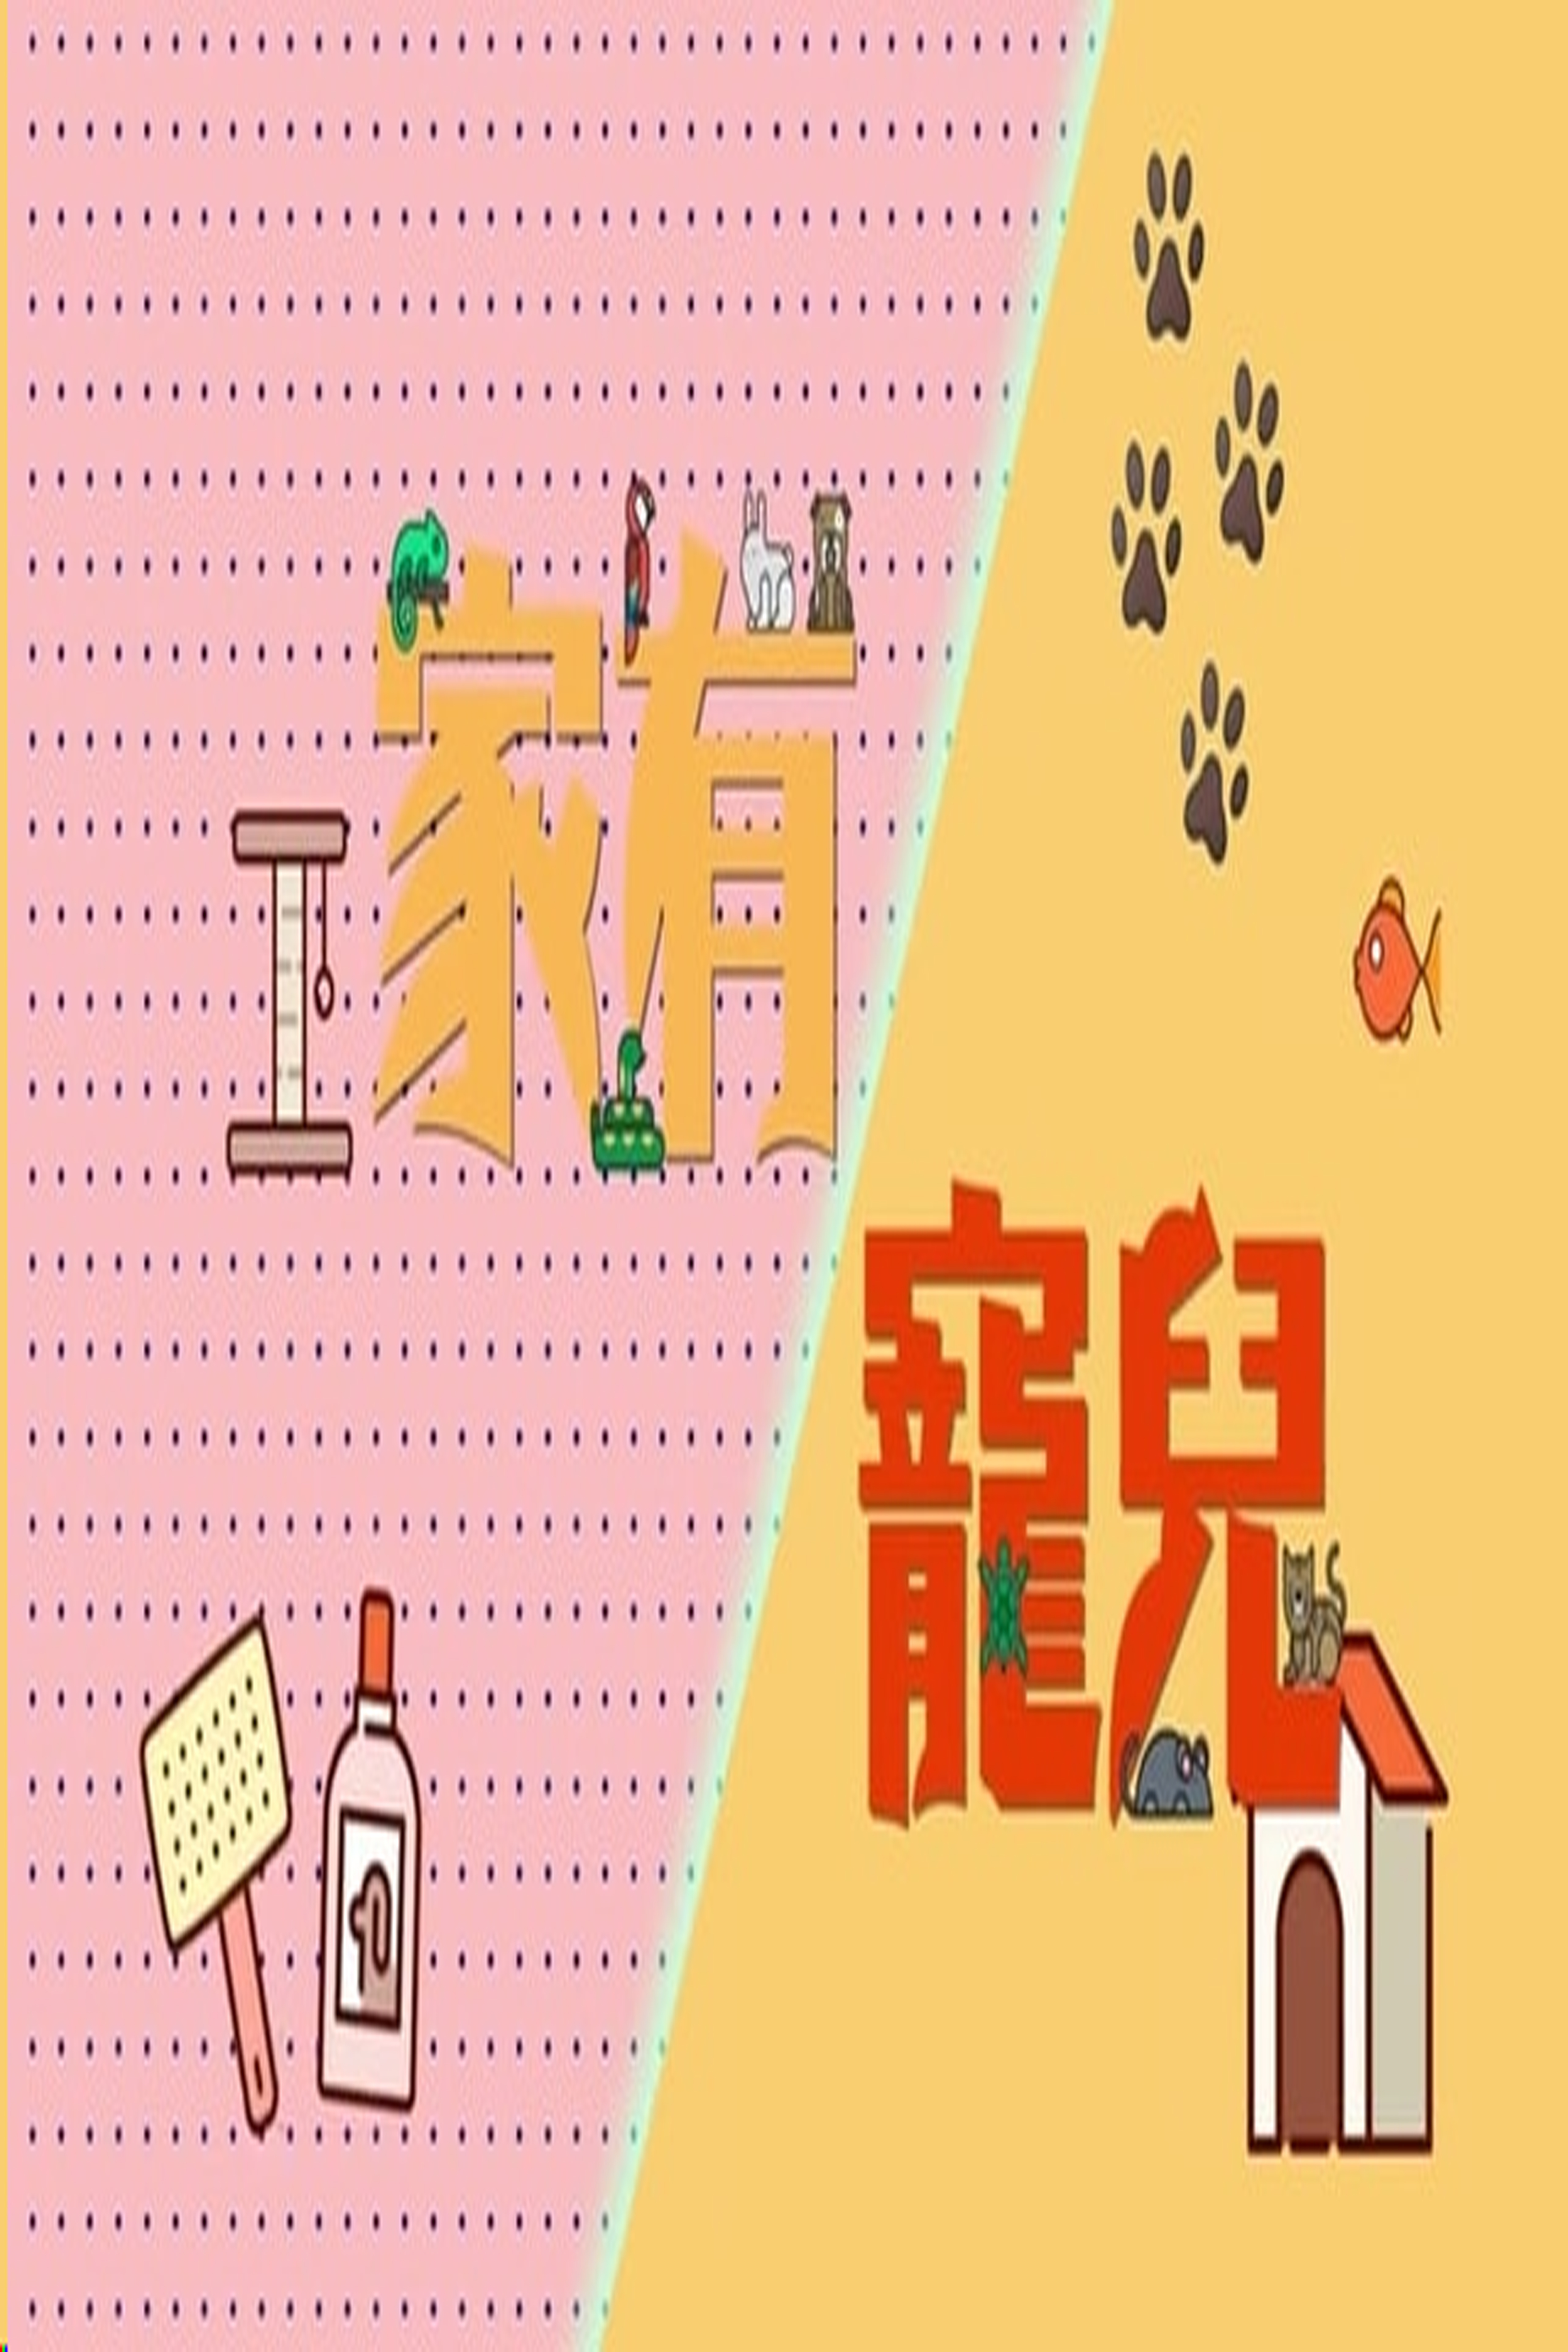 Pets and Family - 家有寵兒